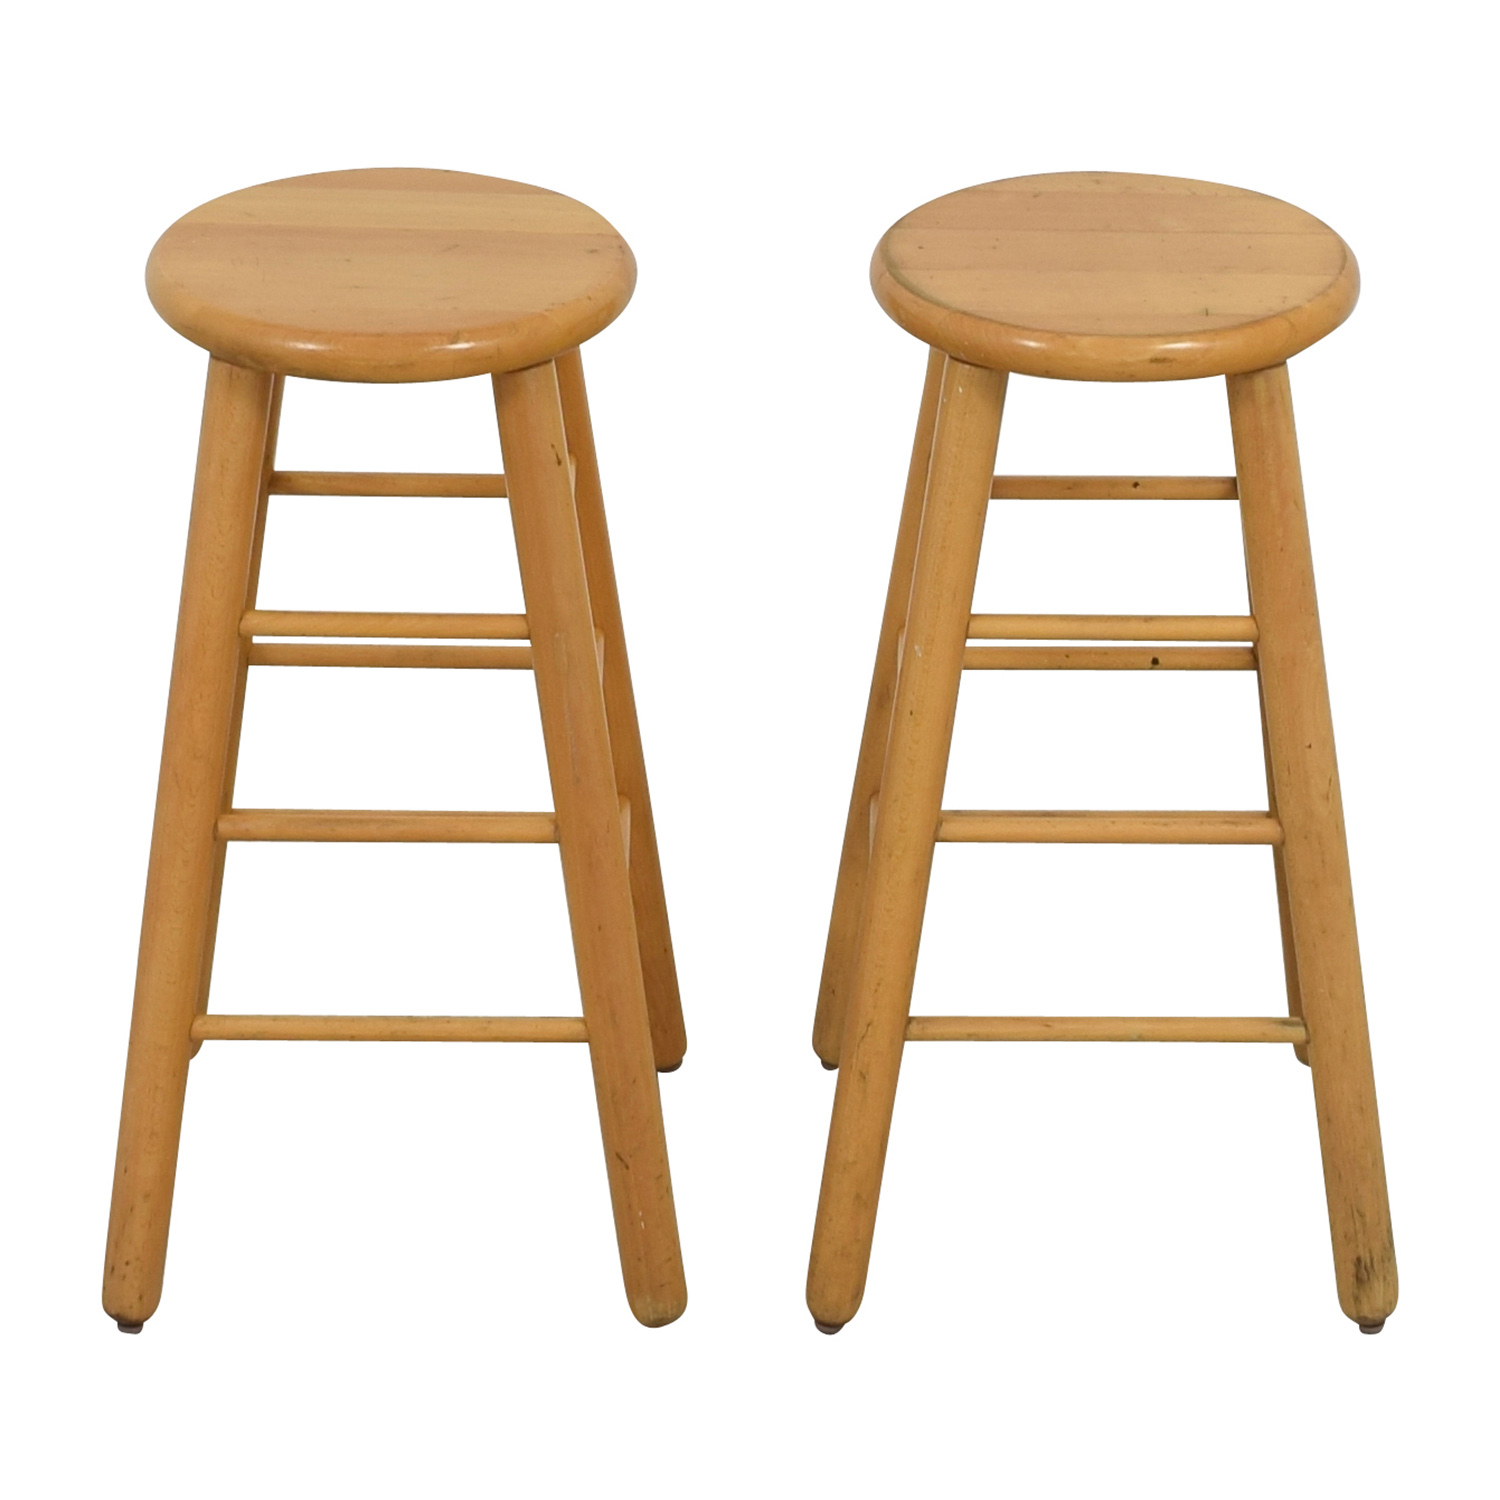 Wood Bar Stools Chairs